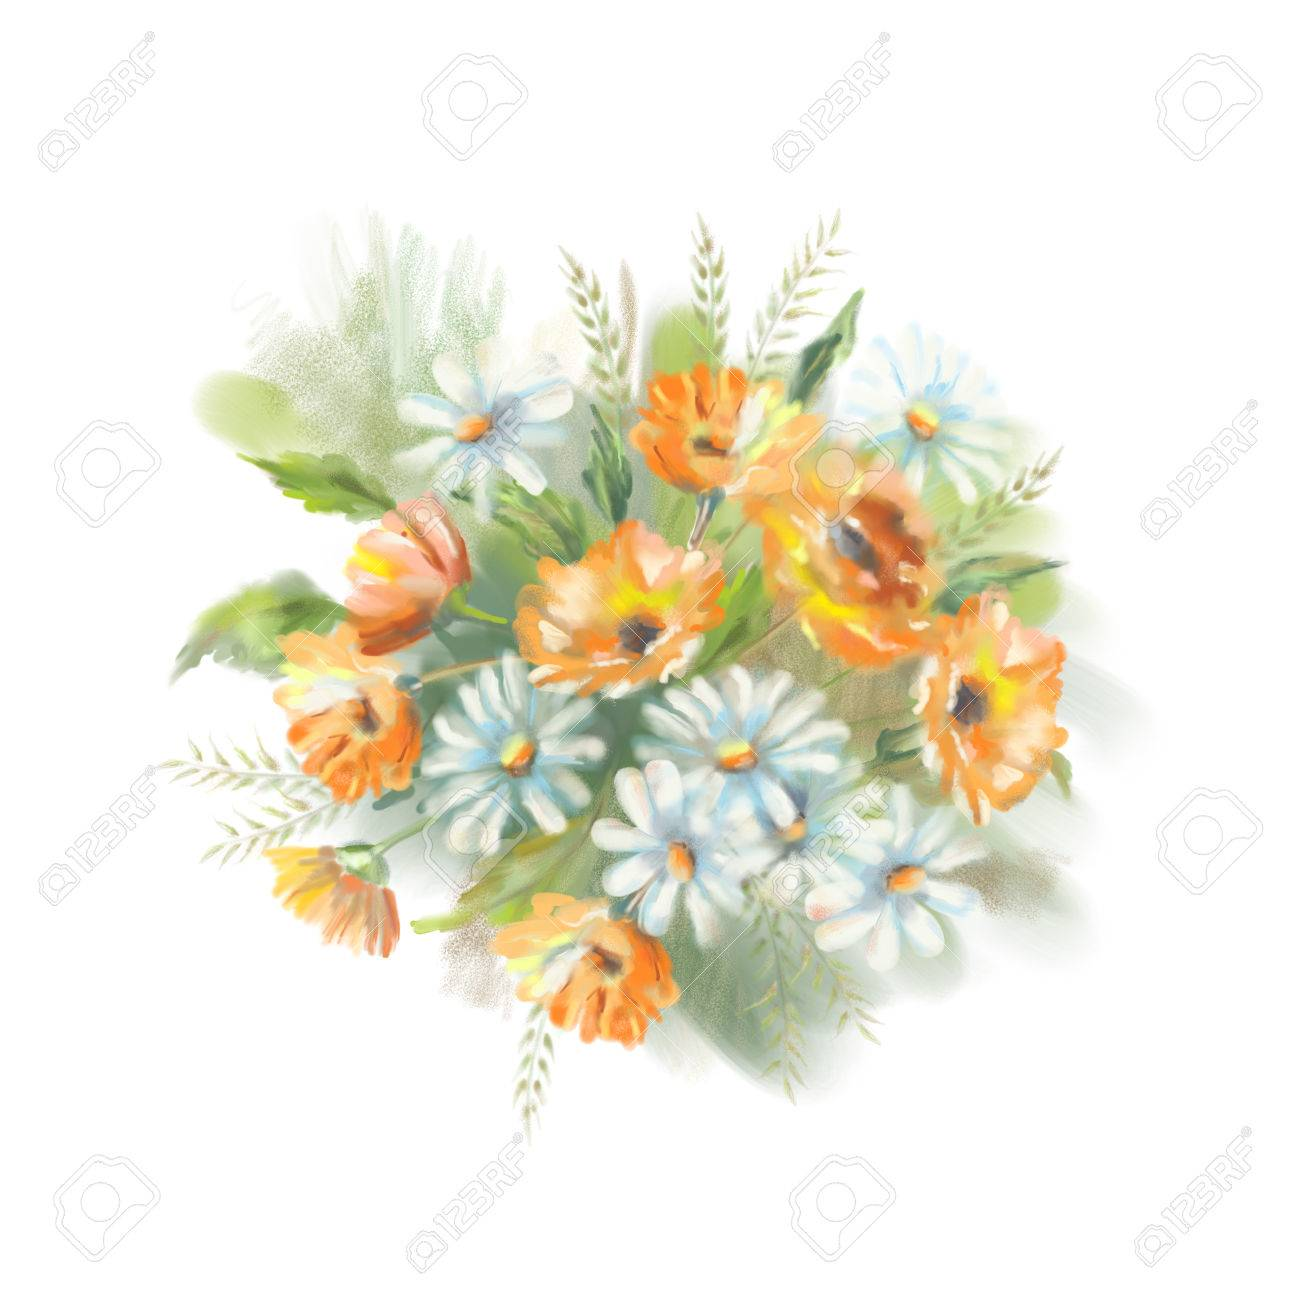 Watercolor illustration of painted flowers bouquet the original illustration watercolor illustration of painted flowers bouquet the original botanical garden nature art on a white background izmirmasajfo